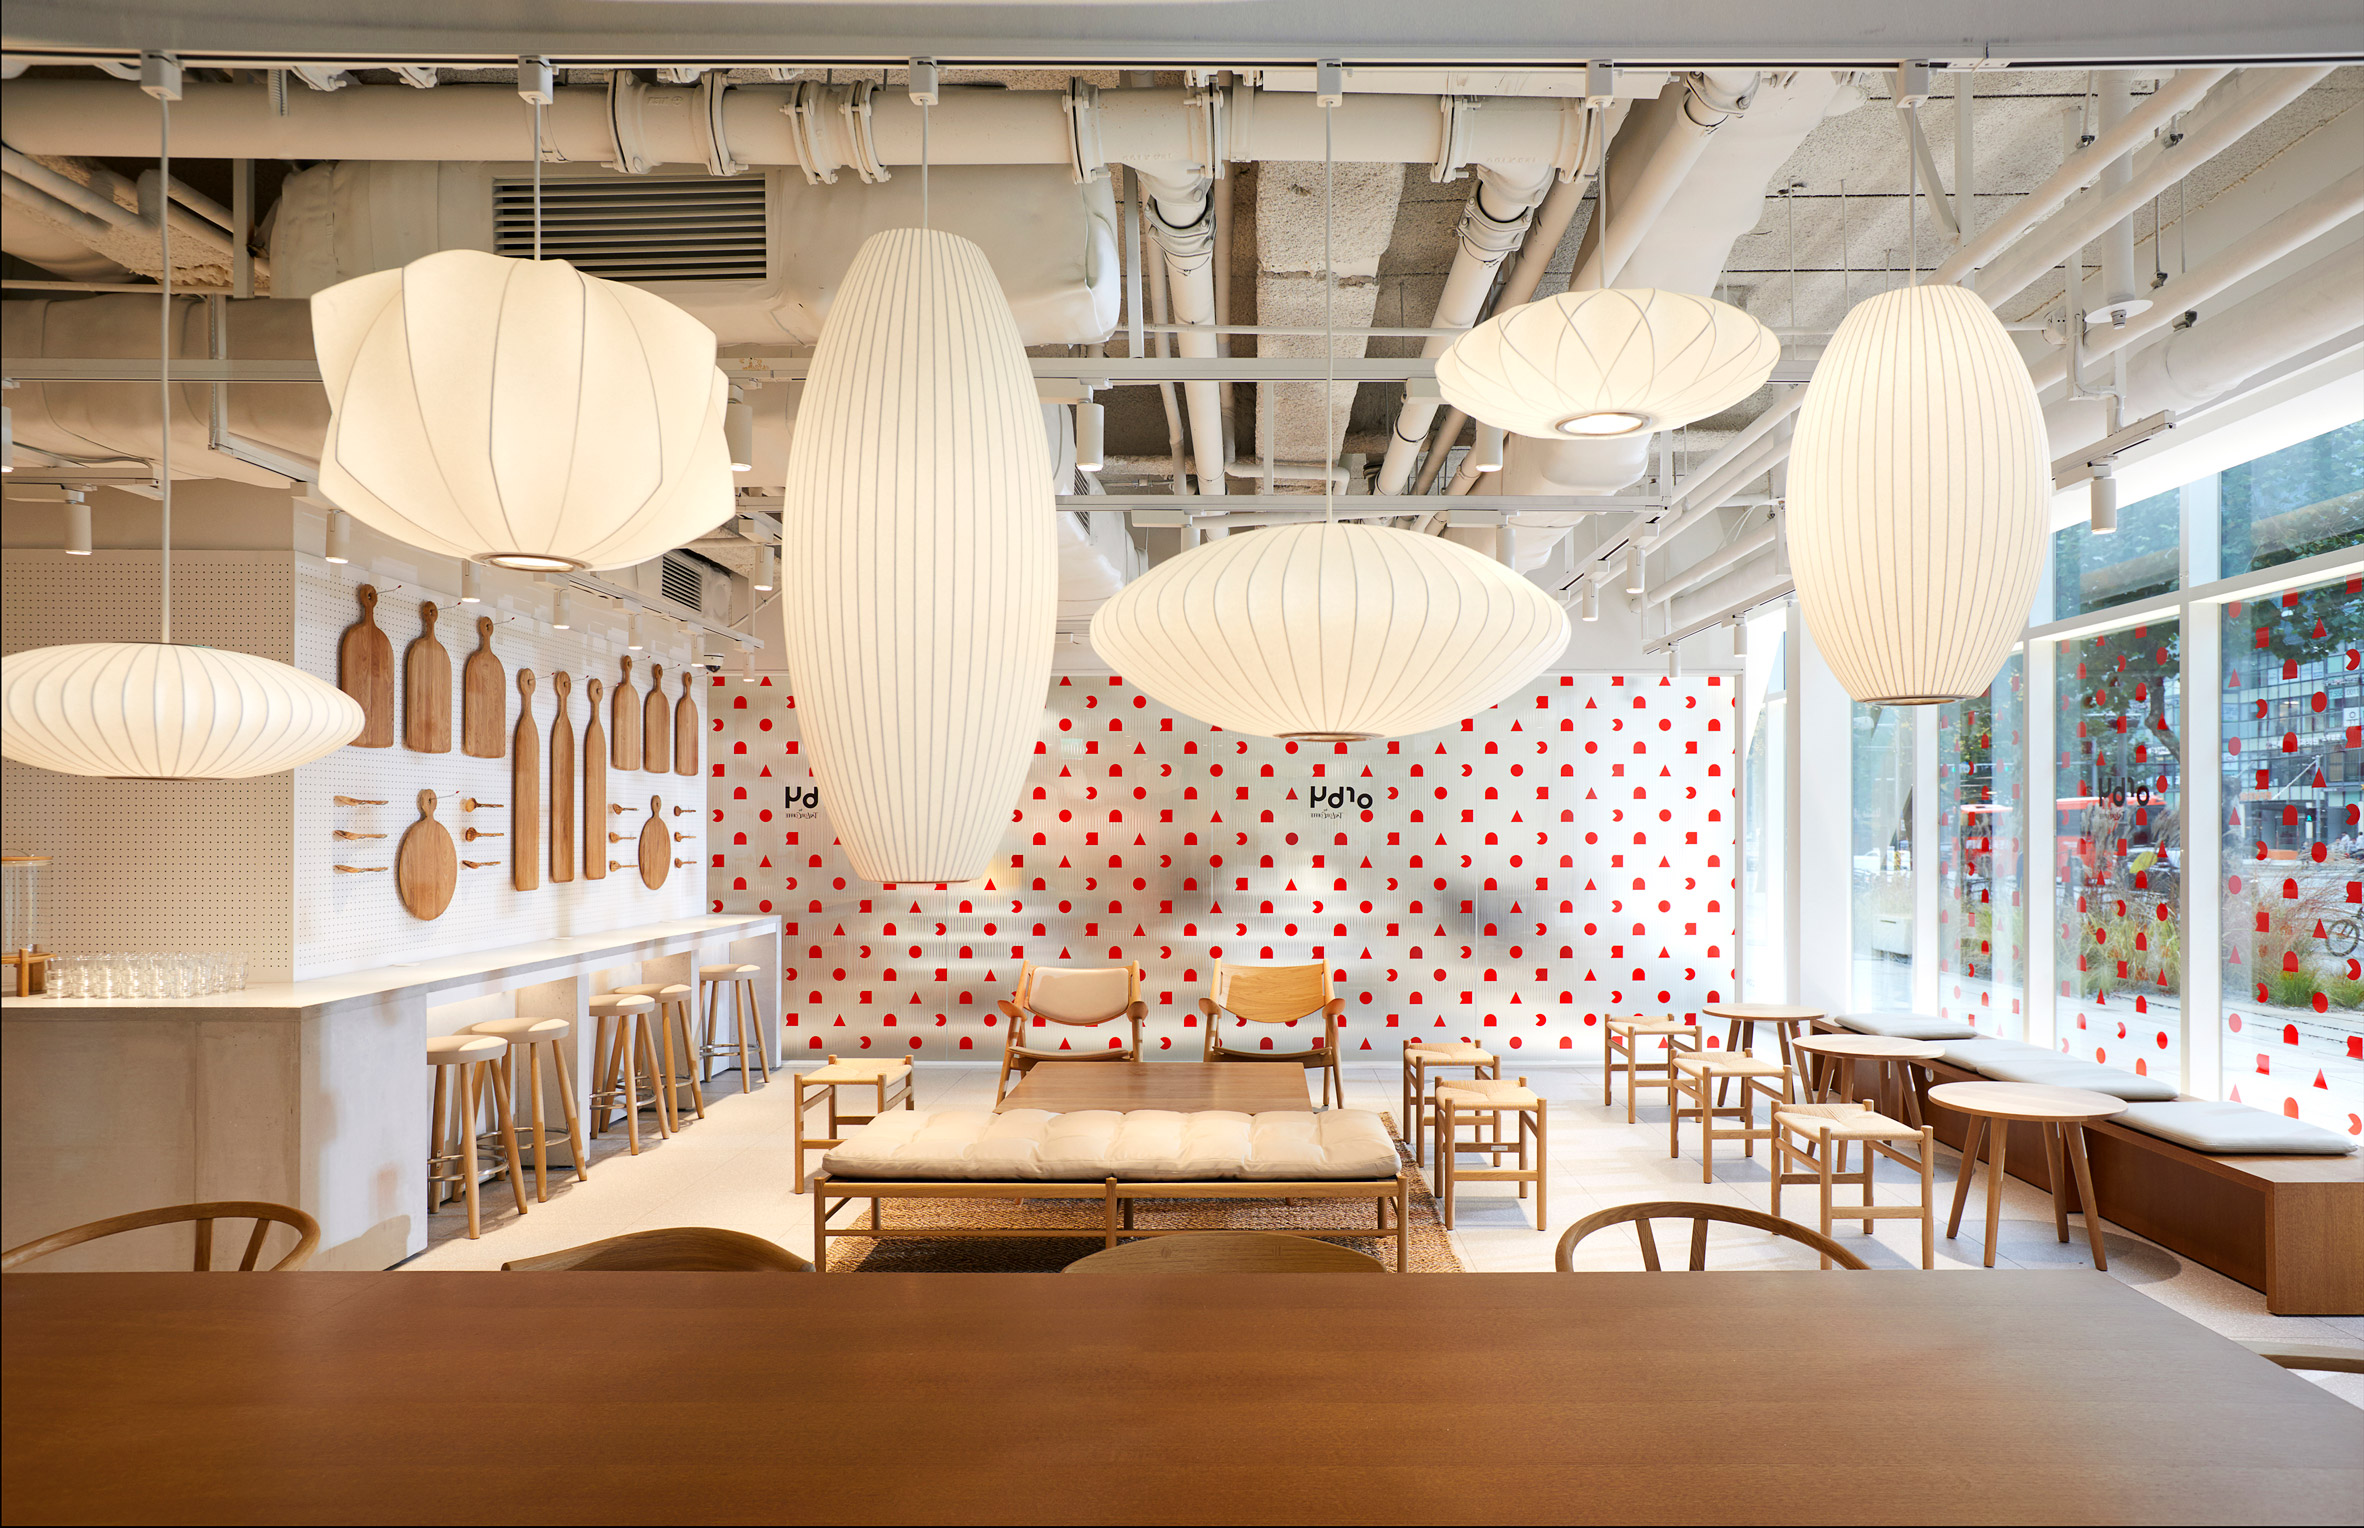 The Conran Shop in Gangnam, Seoul